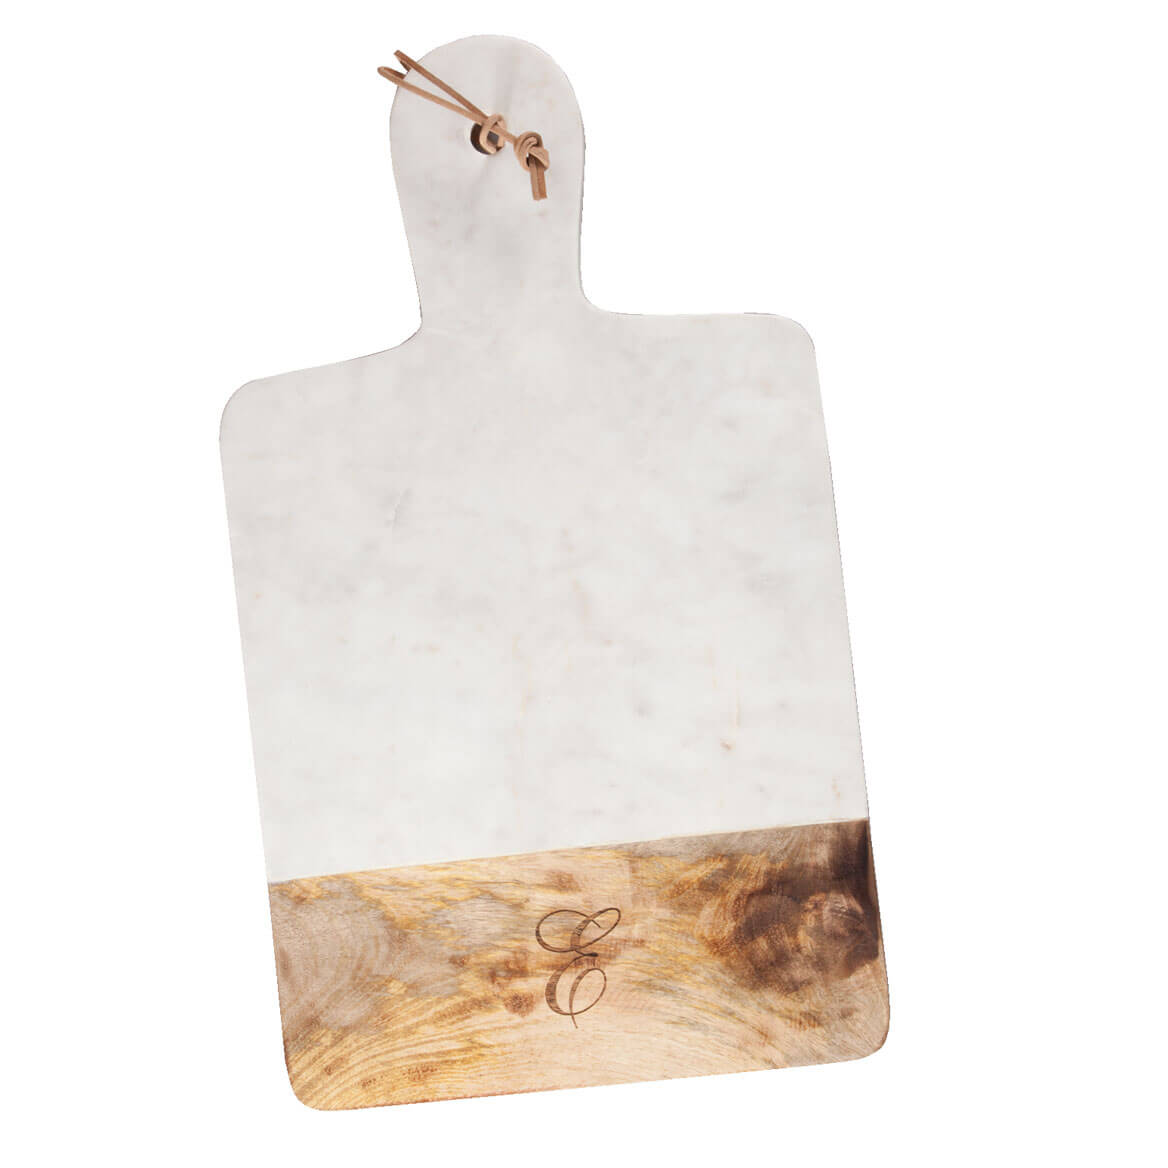 Personalized Marble and Wood Cutting Boards-357140